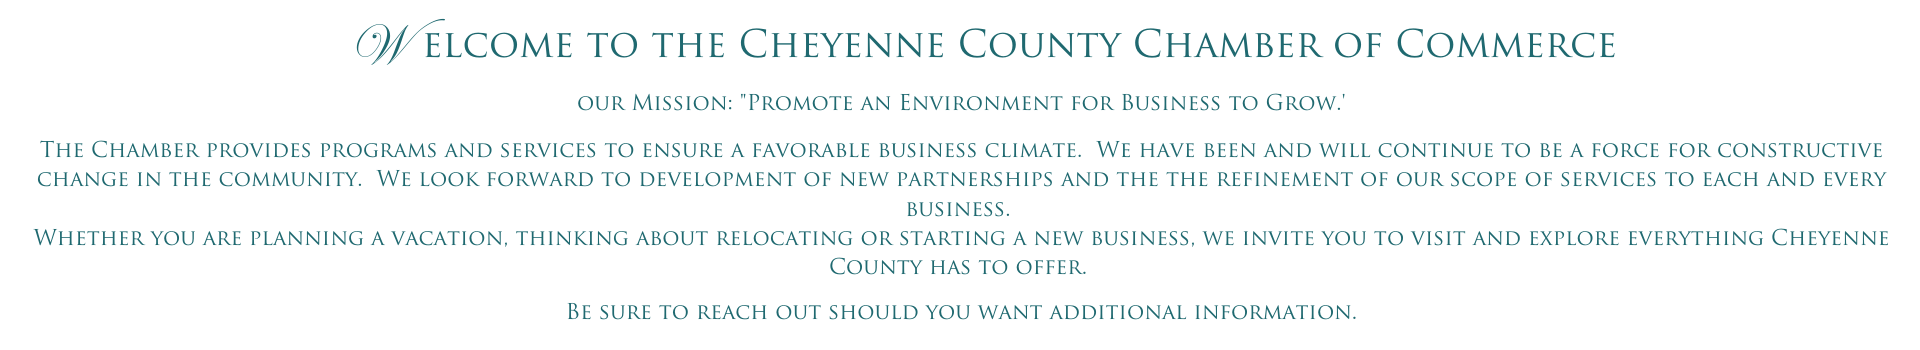 Copy-of-Welcome-to-the-Cheyenne-County-Chamber-of-Commerce-Our-Mission_-'Promote-an-Environment-for-Business-to-Grow.'-The-Chamber-provides-programs-and-services-to-ensure-a-favorable-business-climate.-We-have-been.png